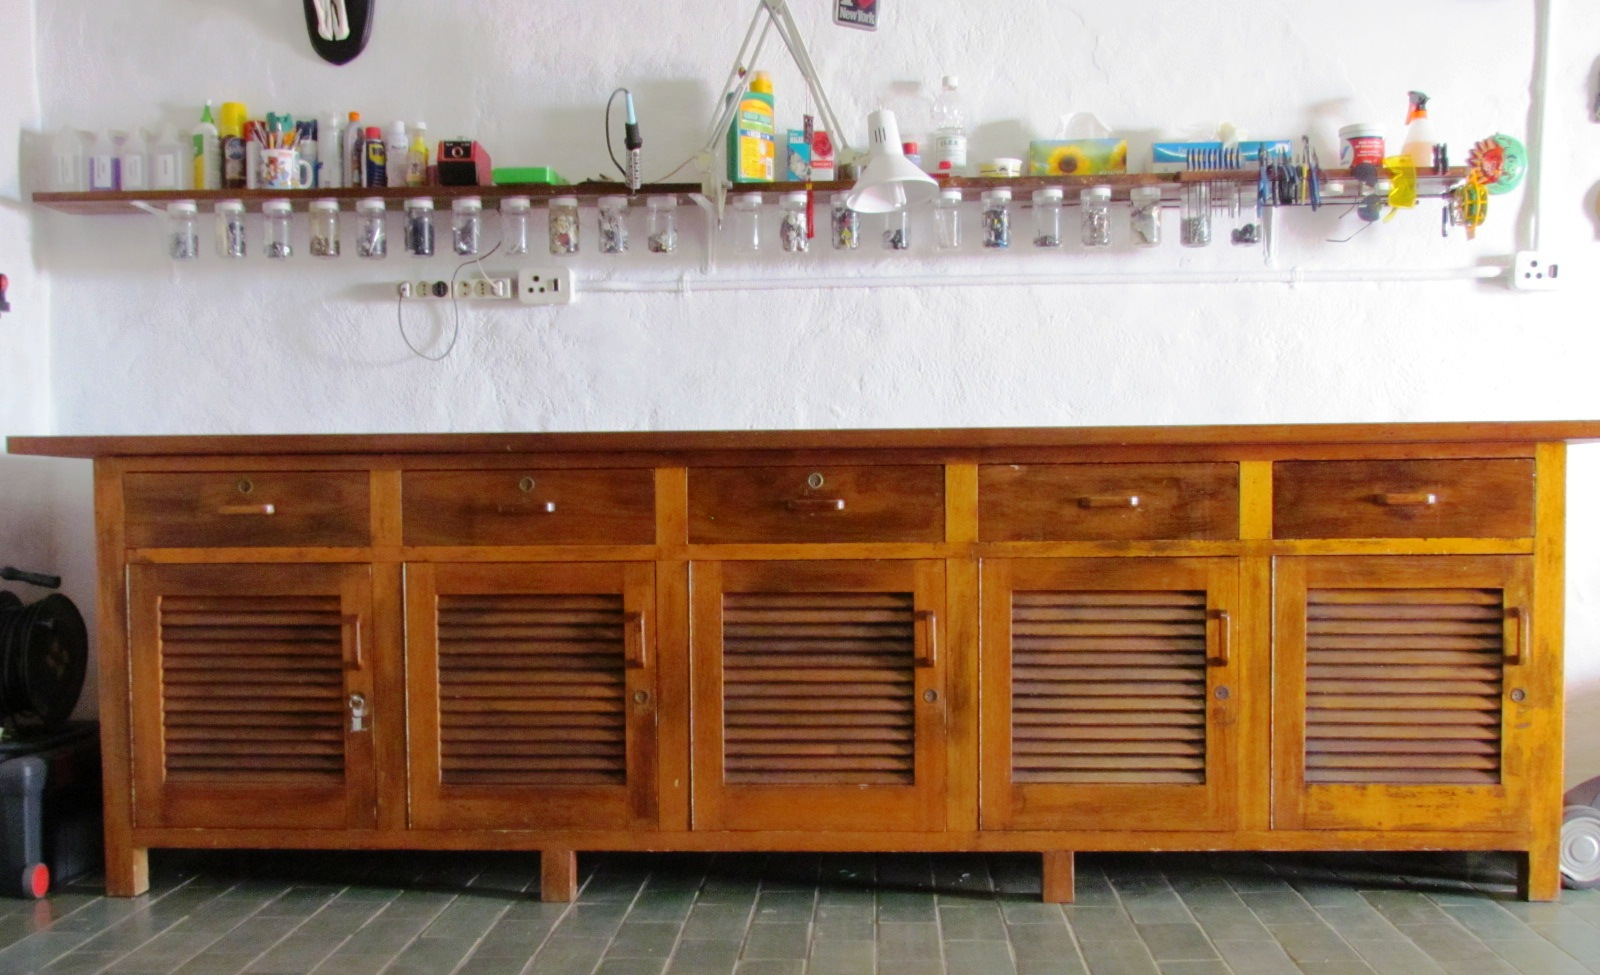 Workshop Table and Cupboard